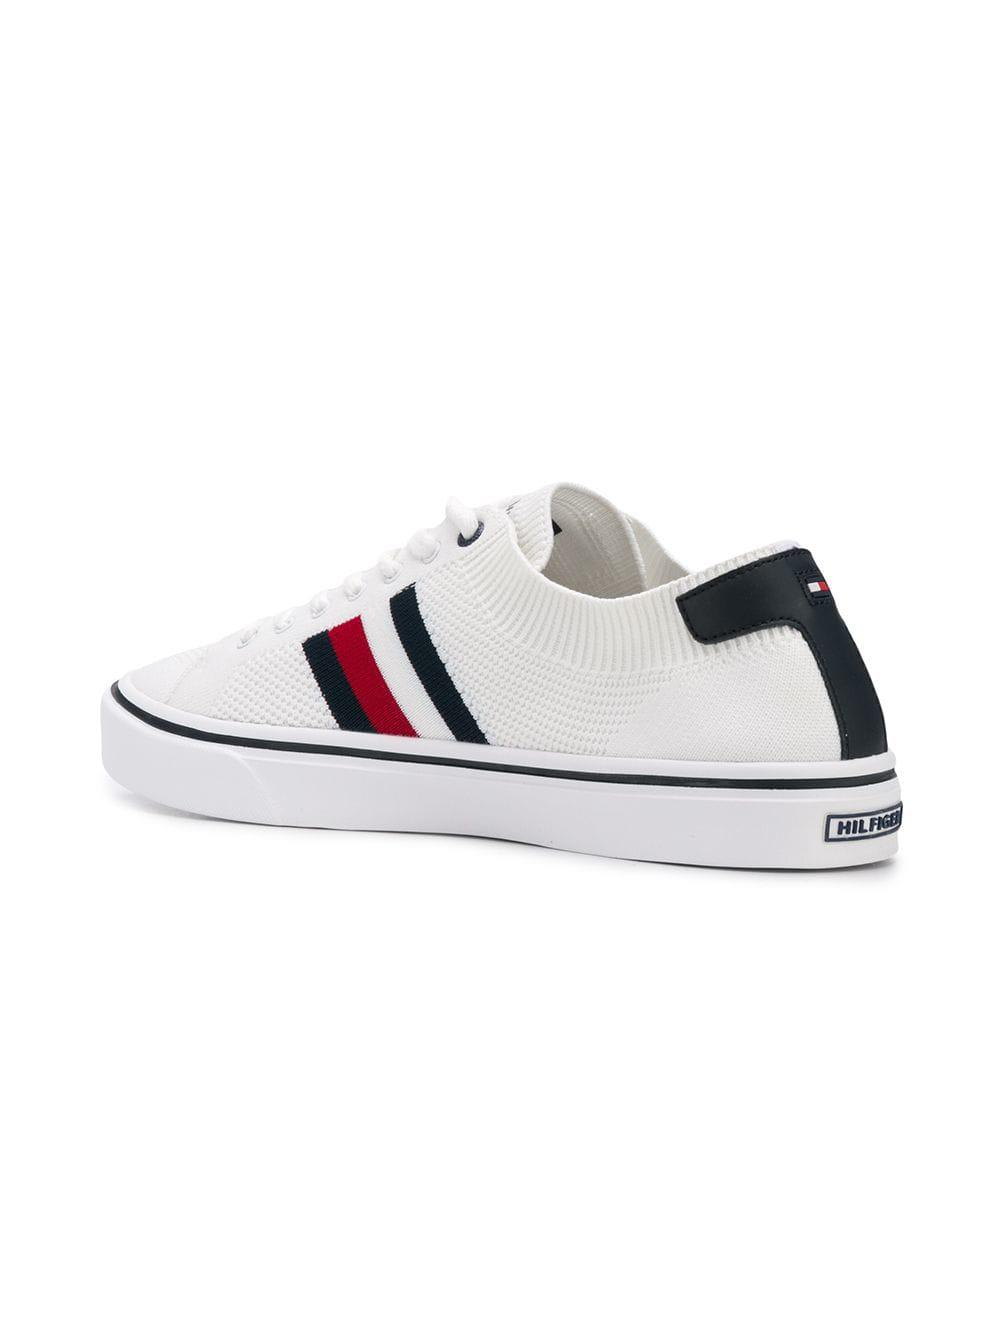 Tommy Hilfiger - White Knit Low-top Sneakers for Men - Lyst. View fullscreen 5c8fdb57add